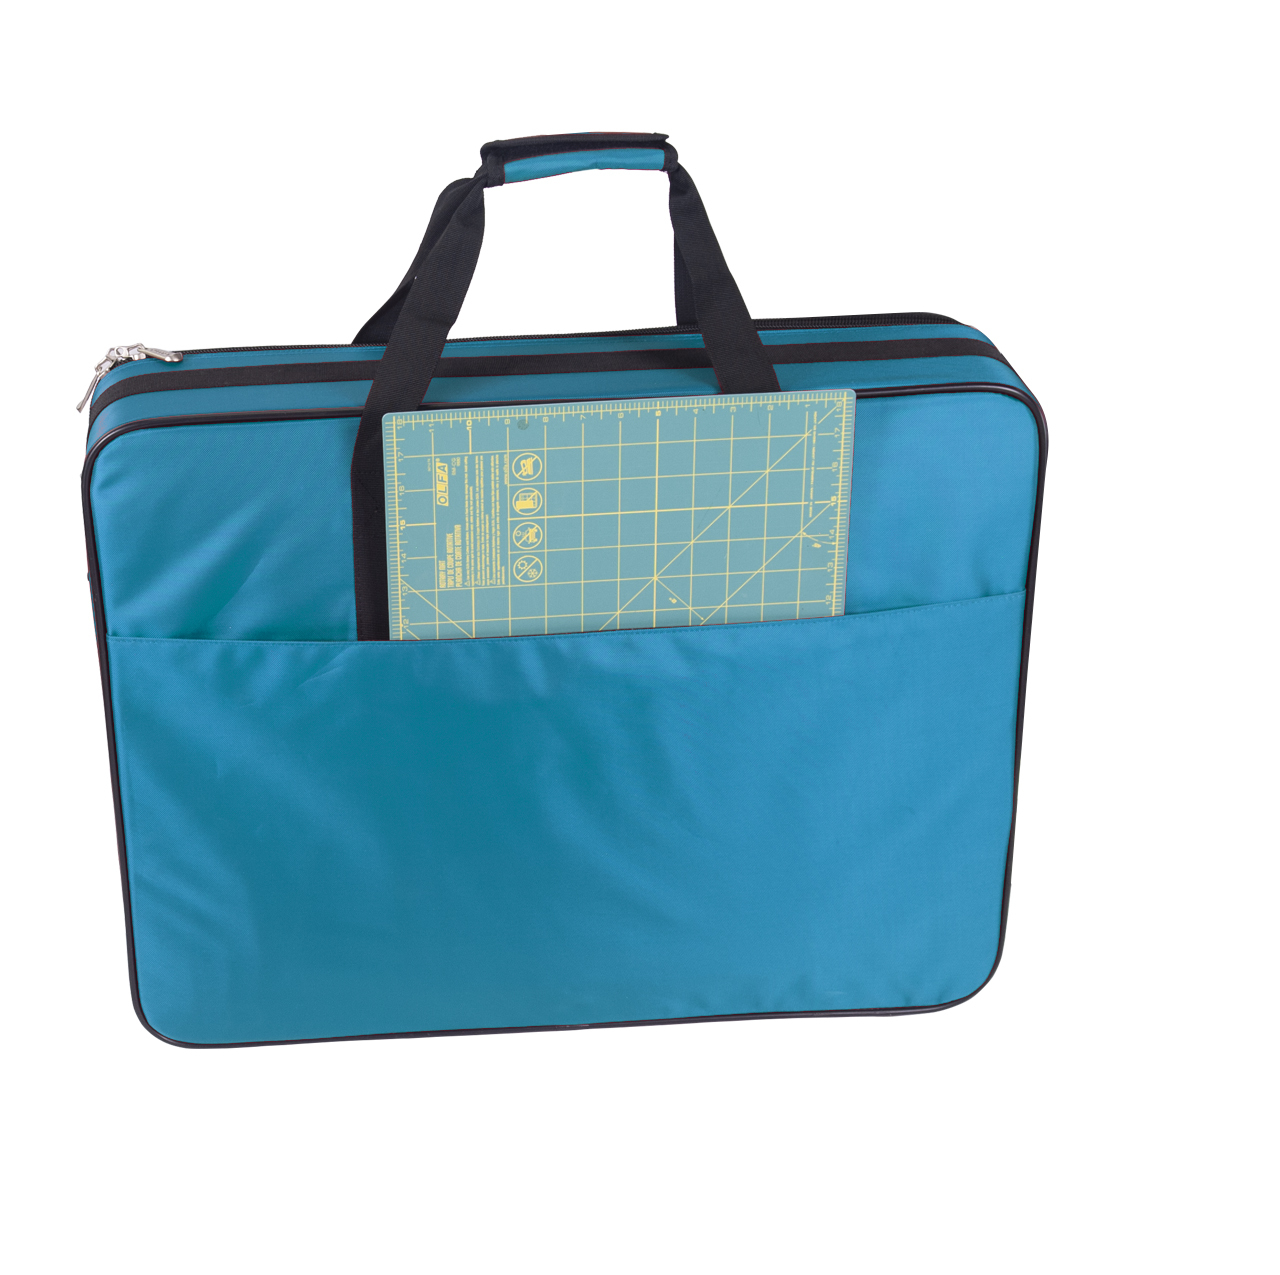 Great companion bag: carry individually with handle or shoulder strap. Also can stack on top of Tutto Machine On Wheels or Tutto Serger On Wheels.